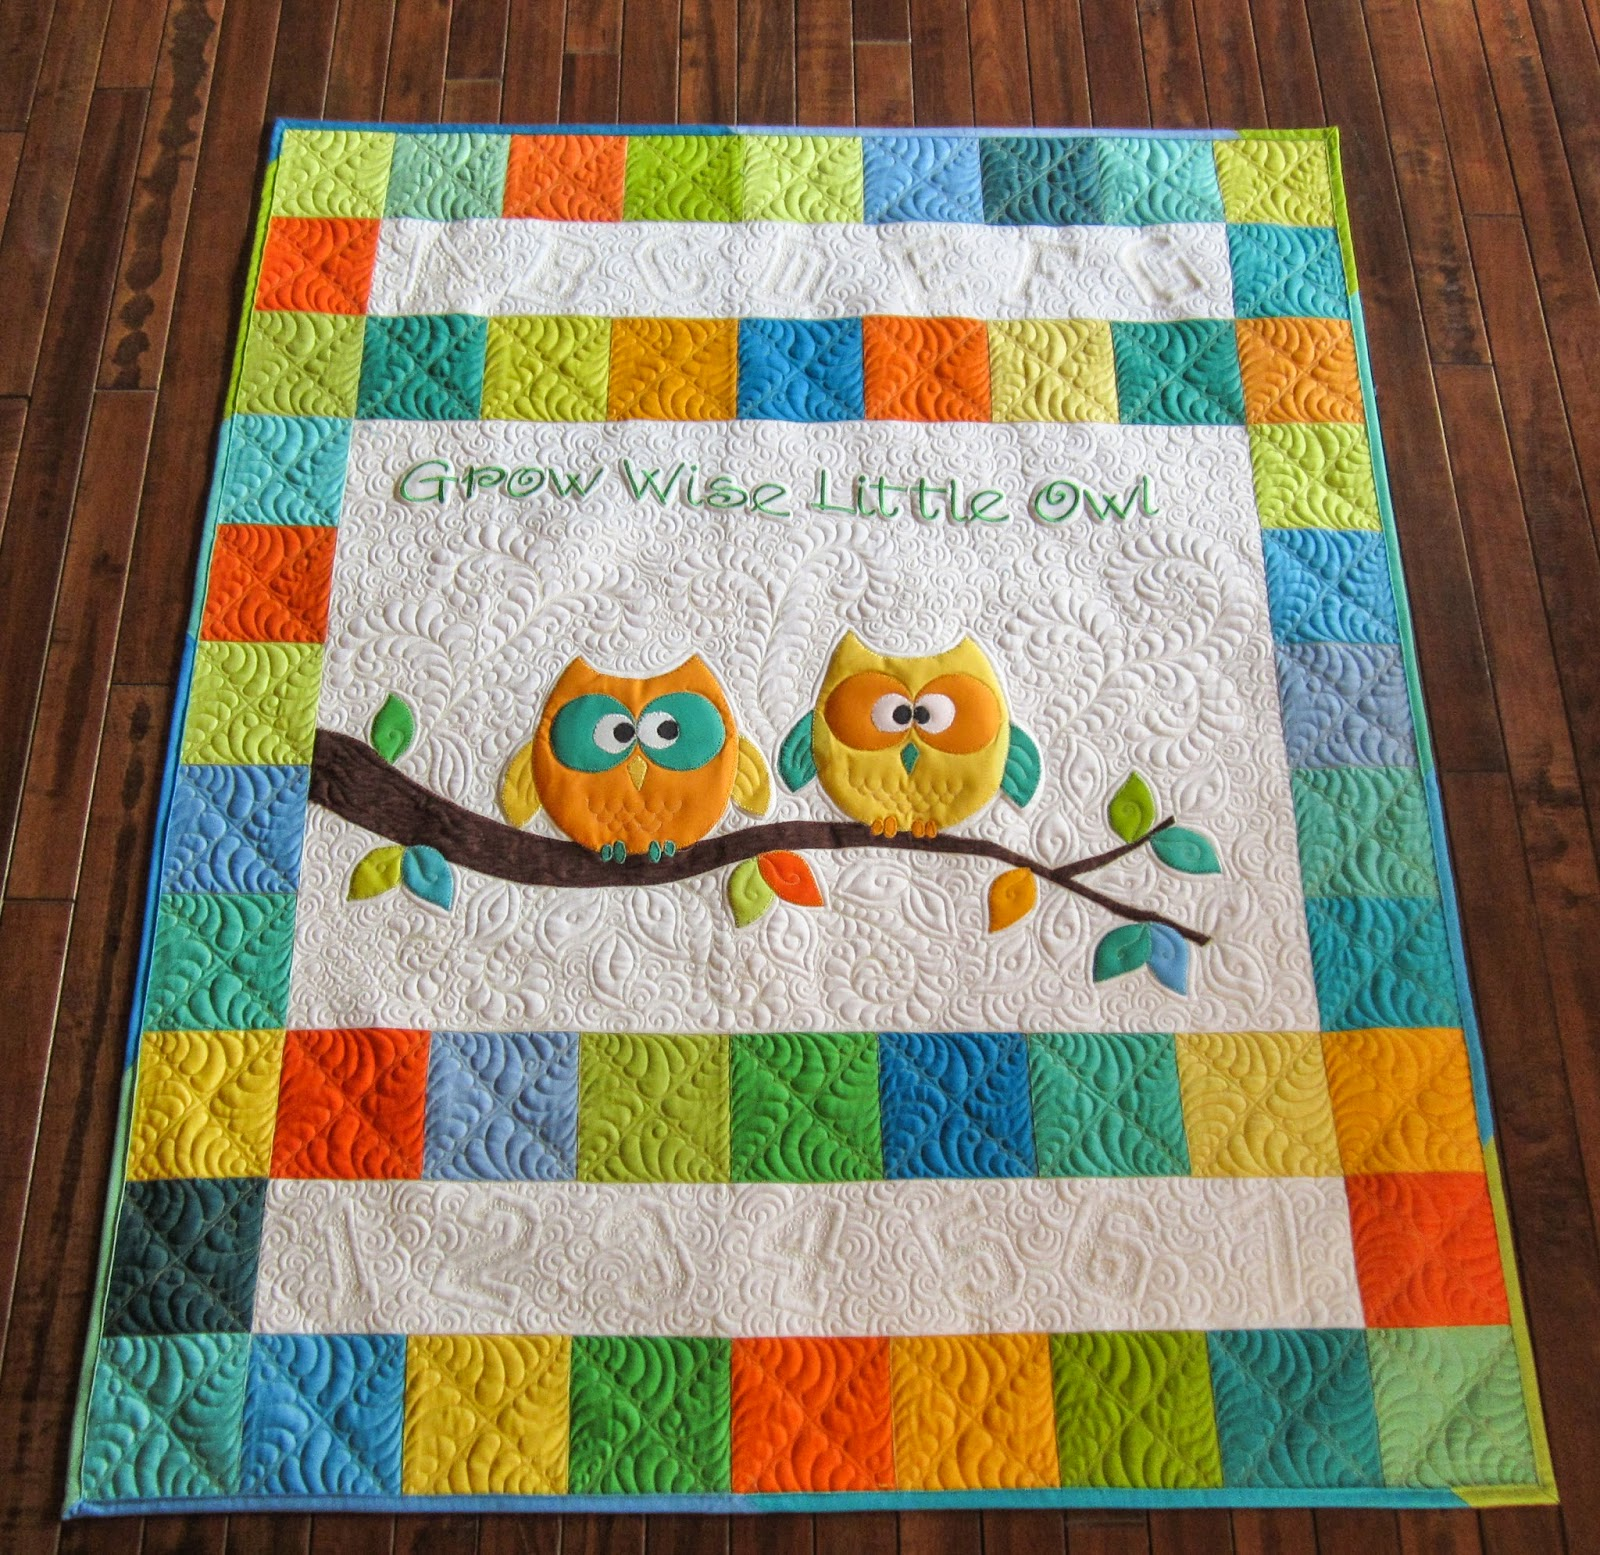 Sue Daurio s Quilting Adventures: Bloggers Quilt Festival Spring 2015 - small quilt - Grow Wise ...